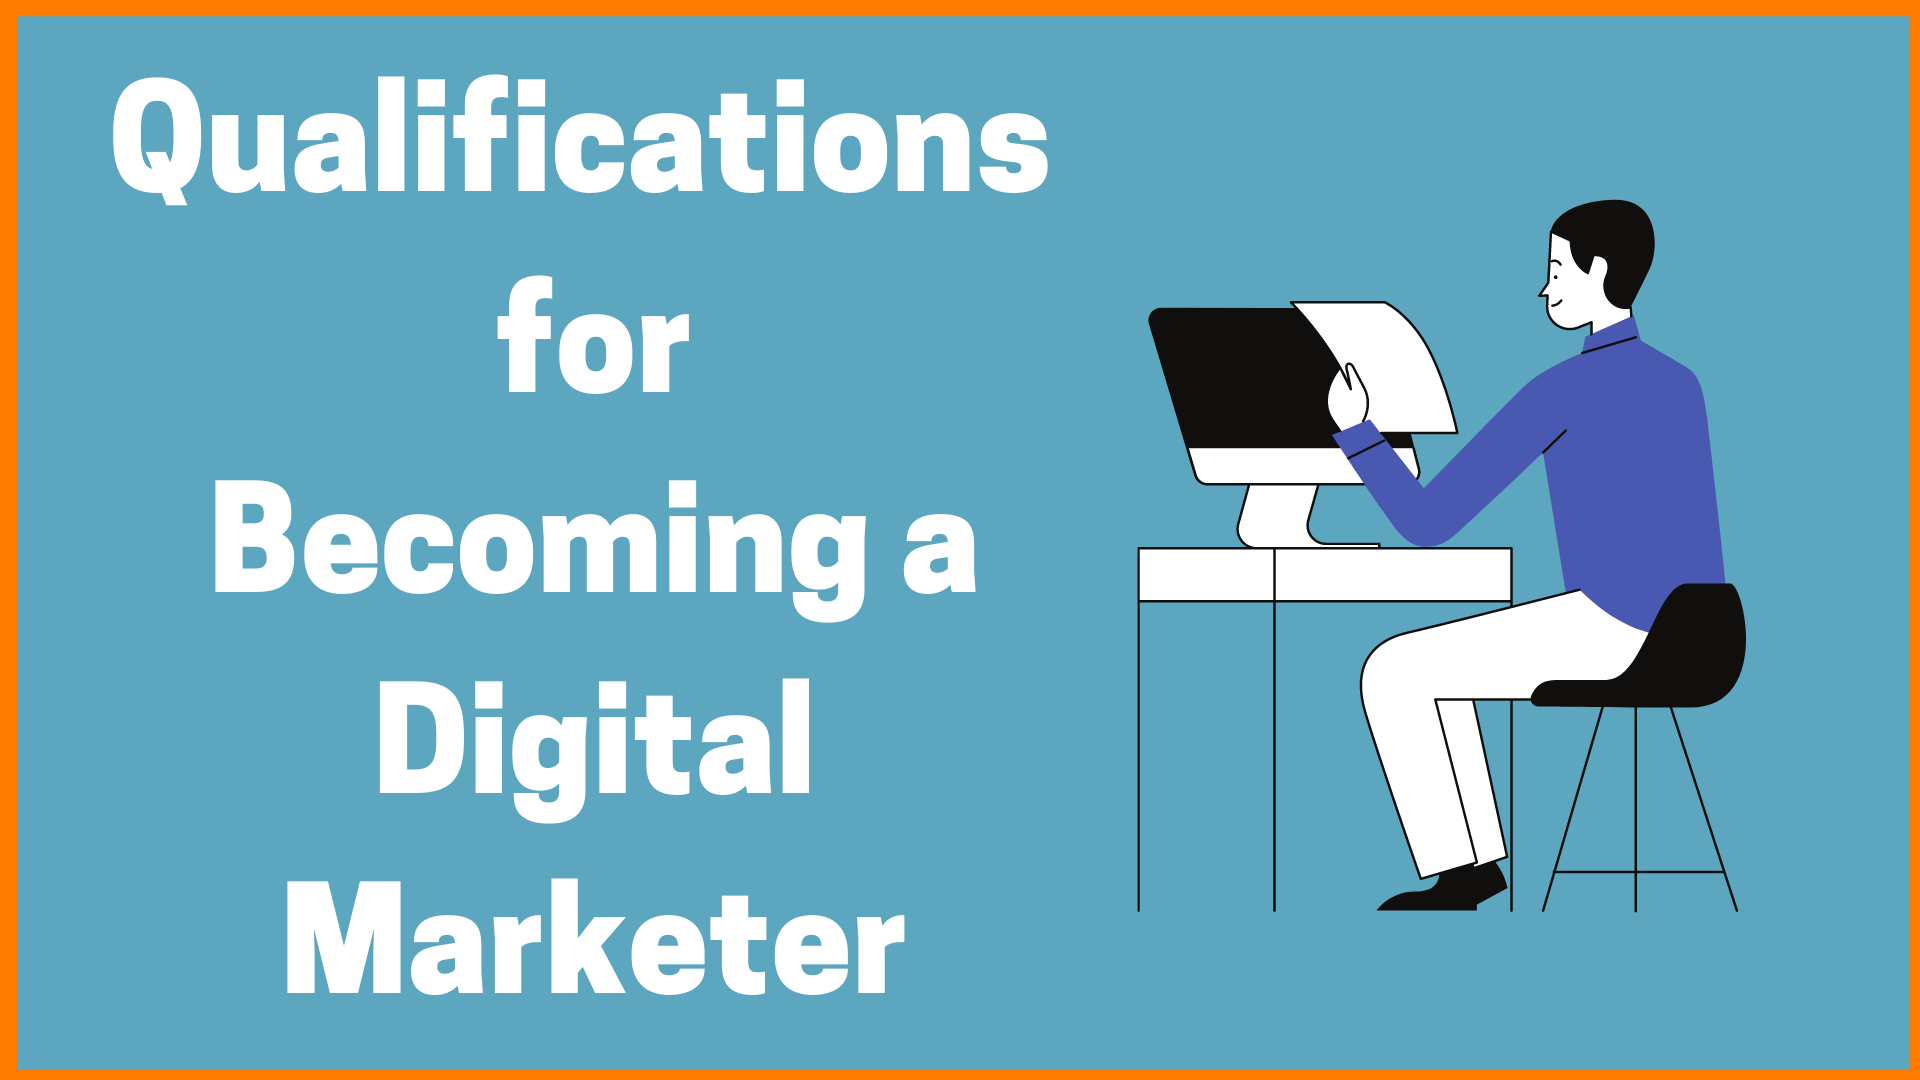 Qualifications for Becoming a Digital Marketer